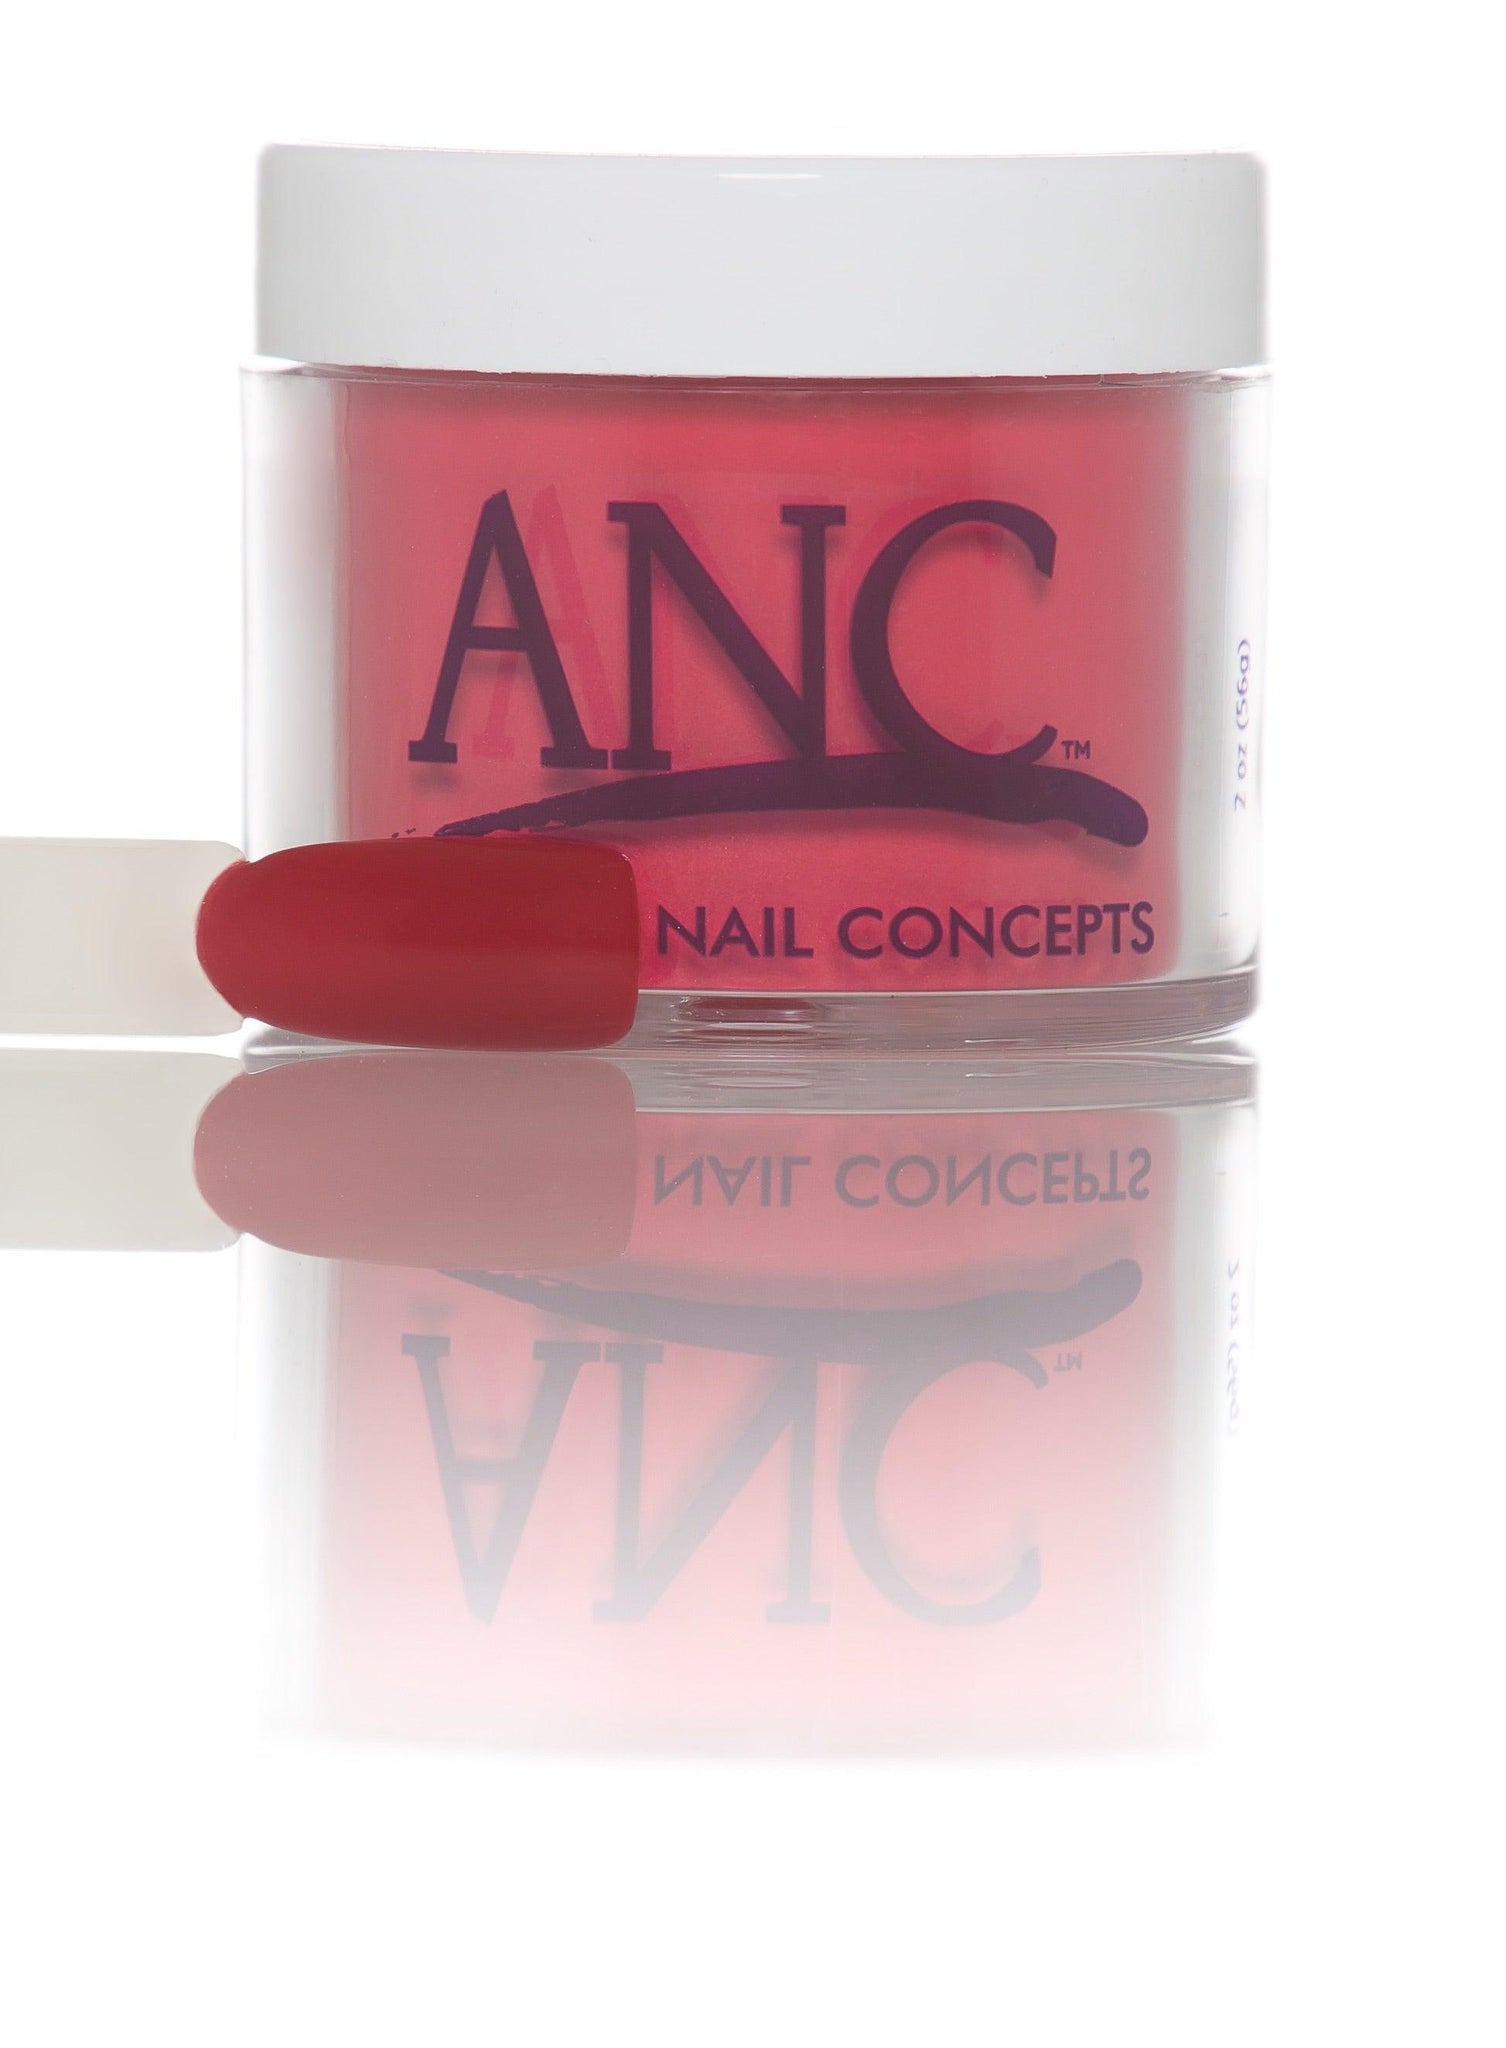 Very Cherry Martini - 77 - Amazing Nail Concept Dip Powder